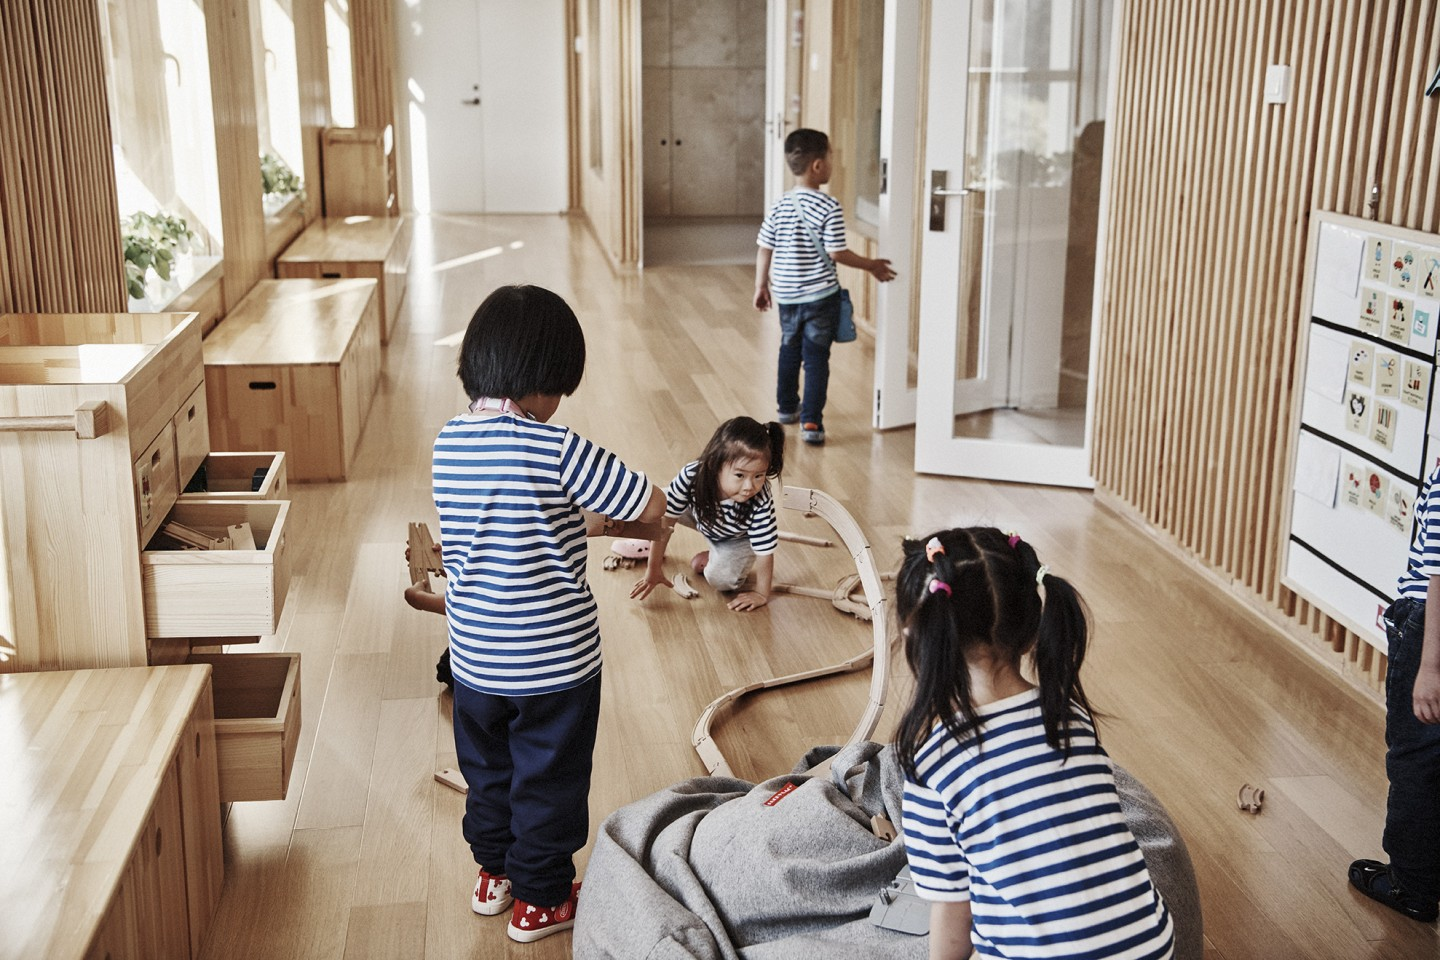 HEI Schools children playing together